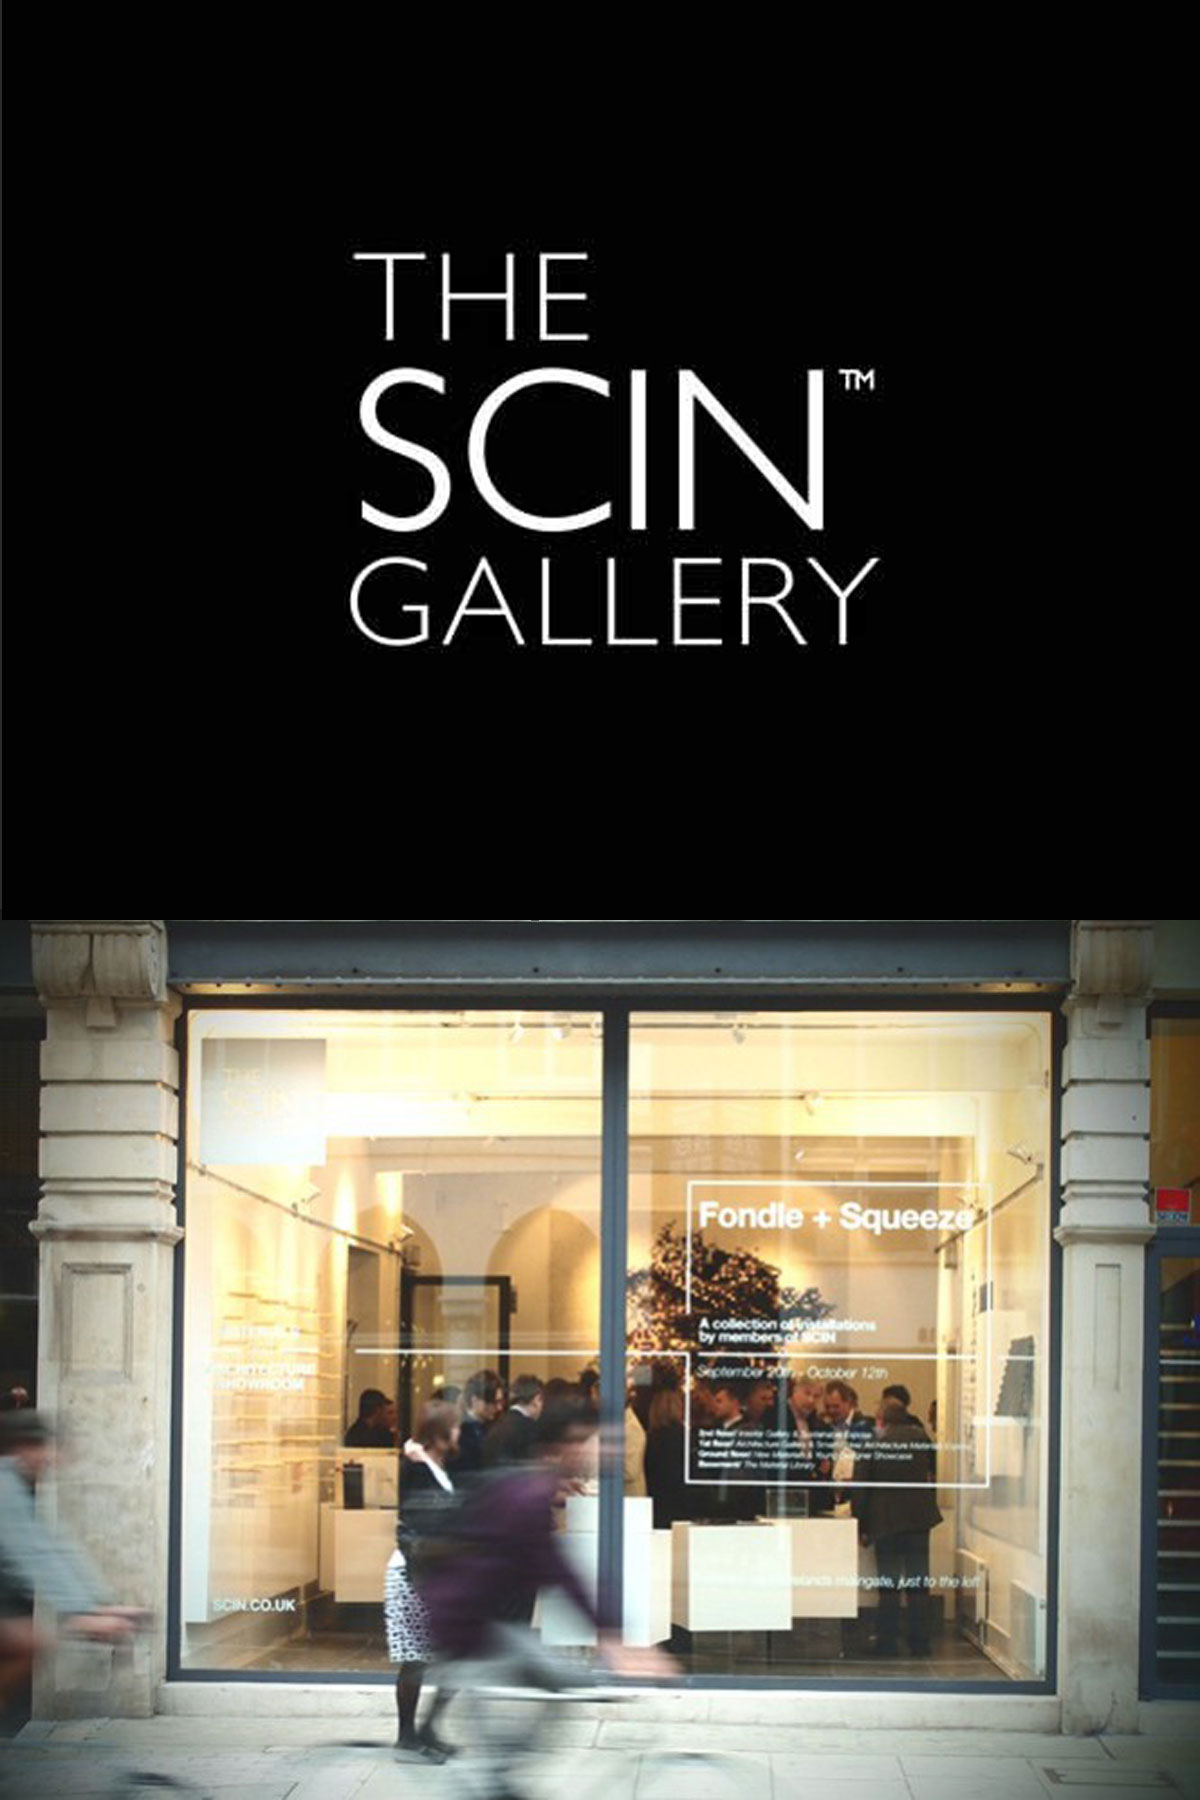 THE SCIN GALLERY